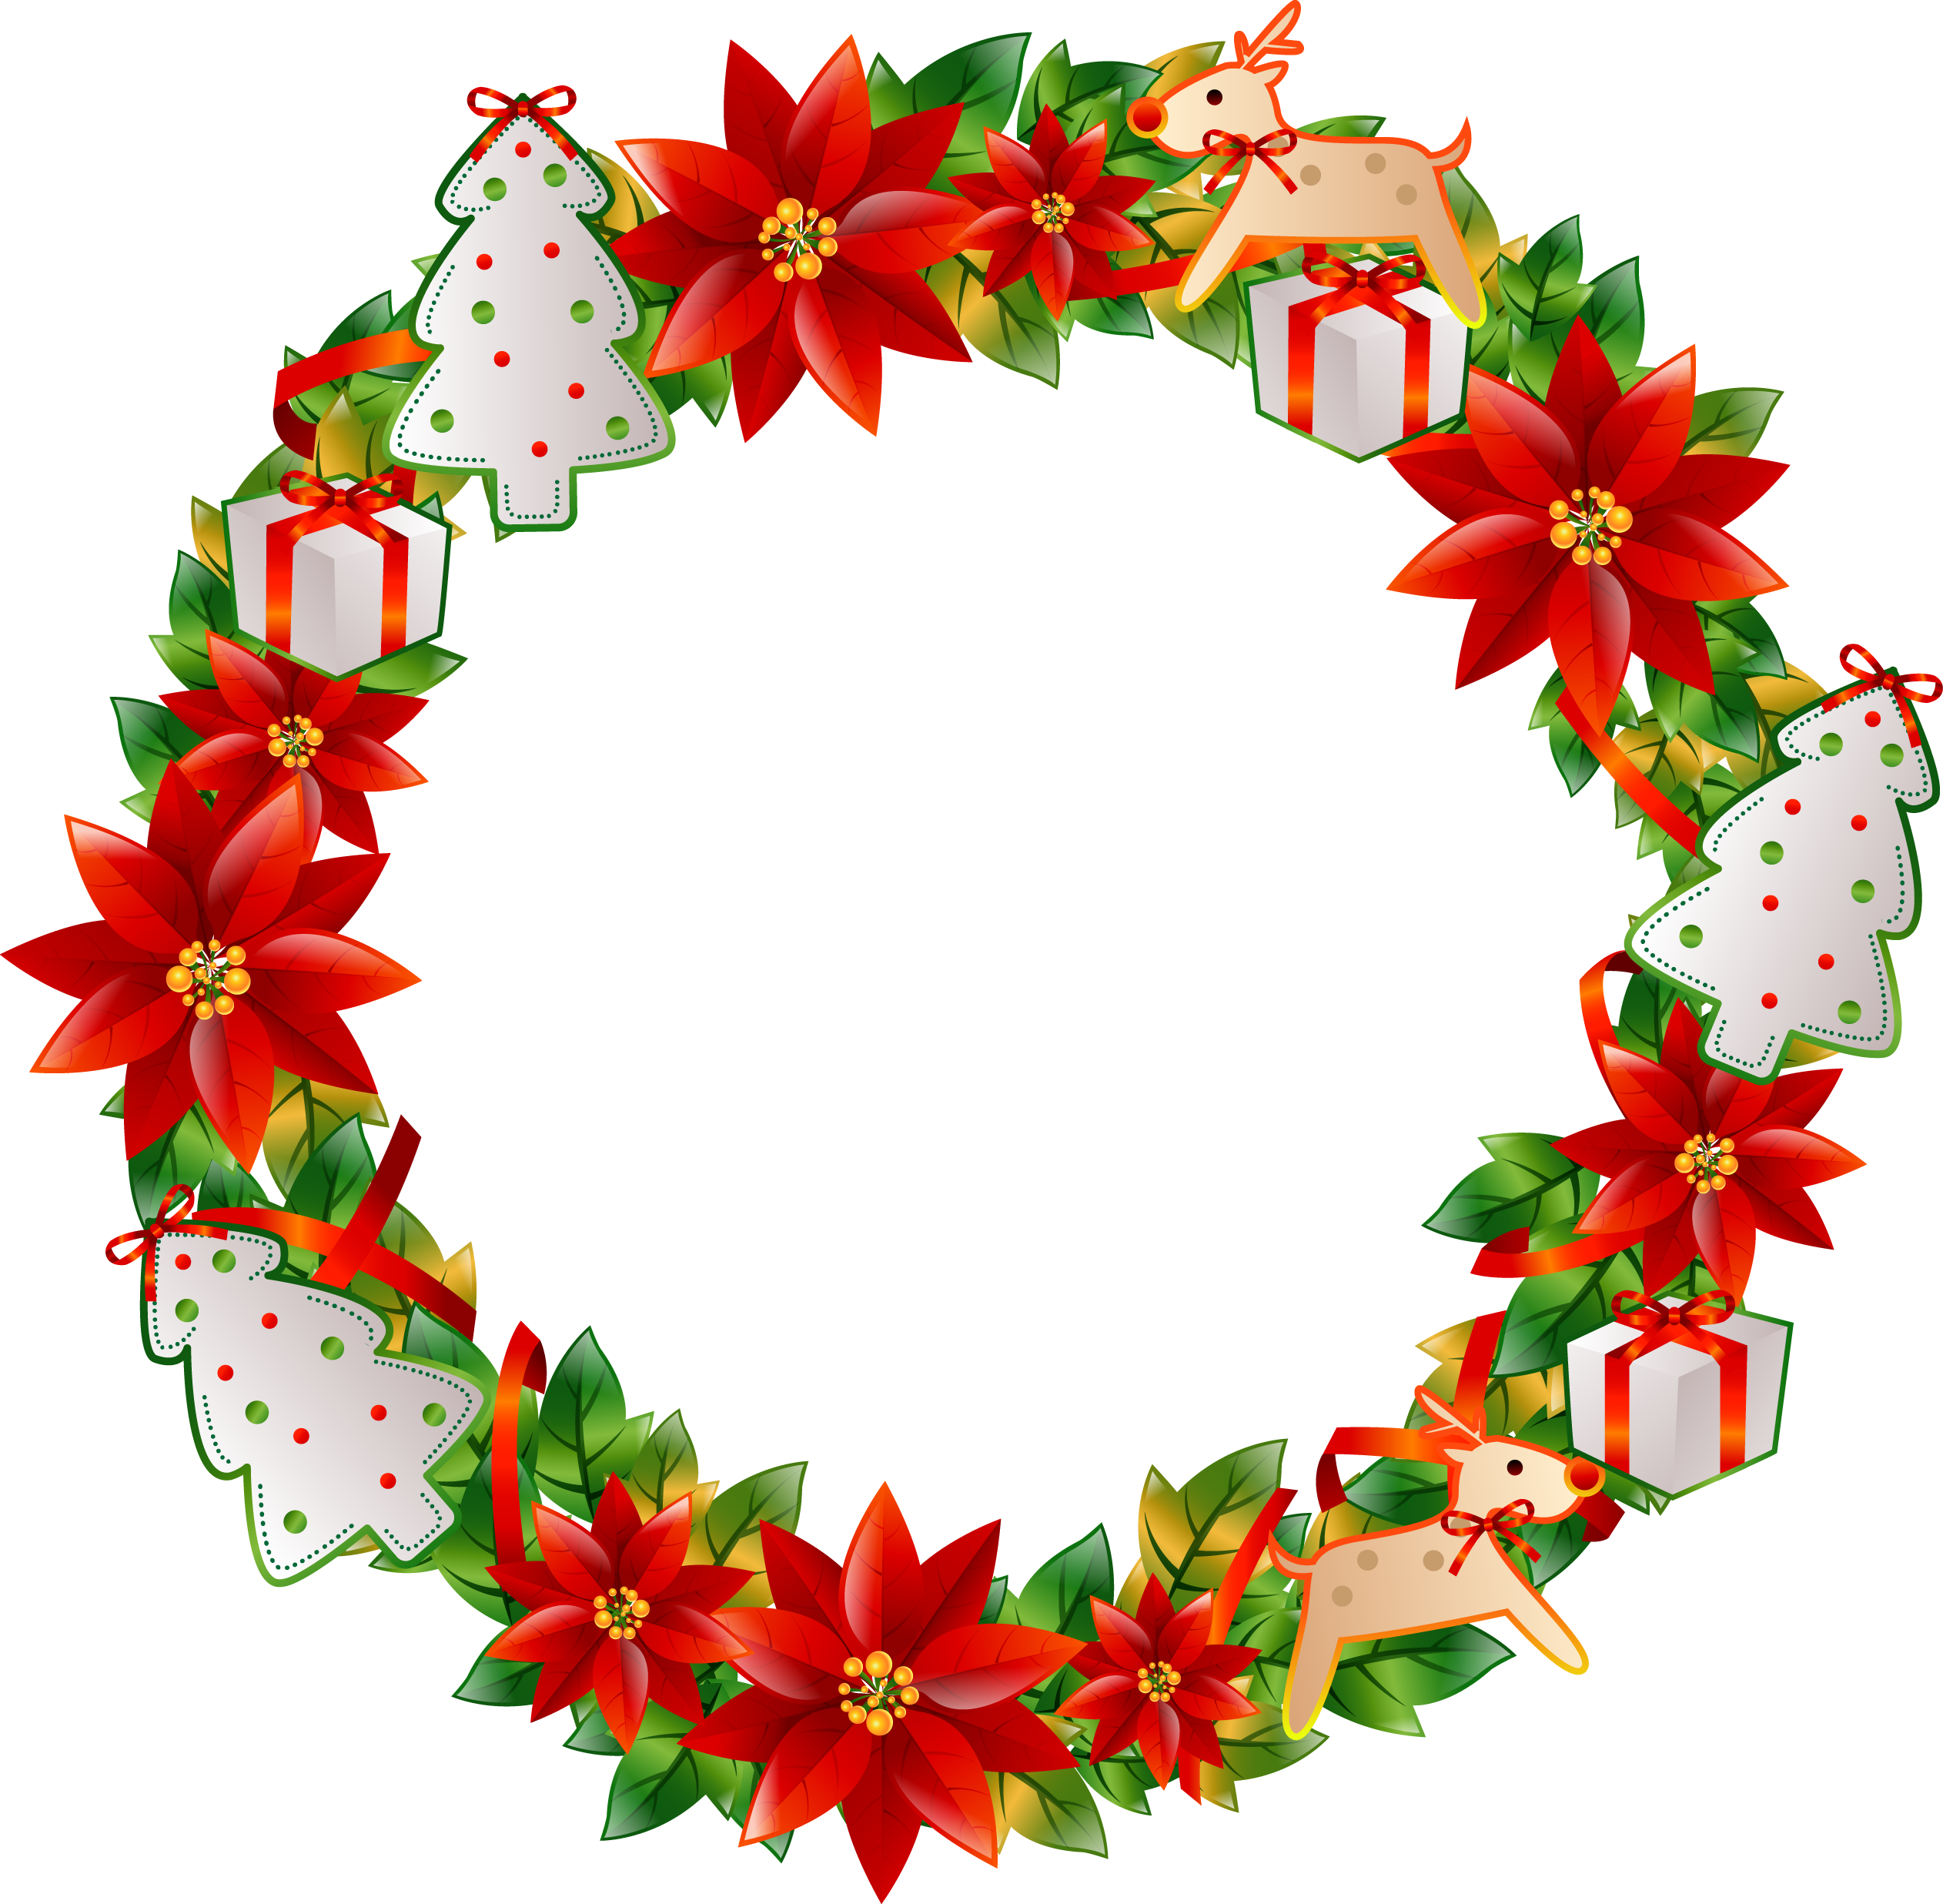 Flower circle png. Christmas wreath transprent free